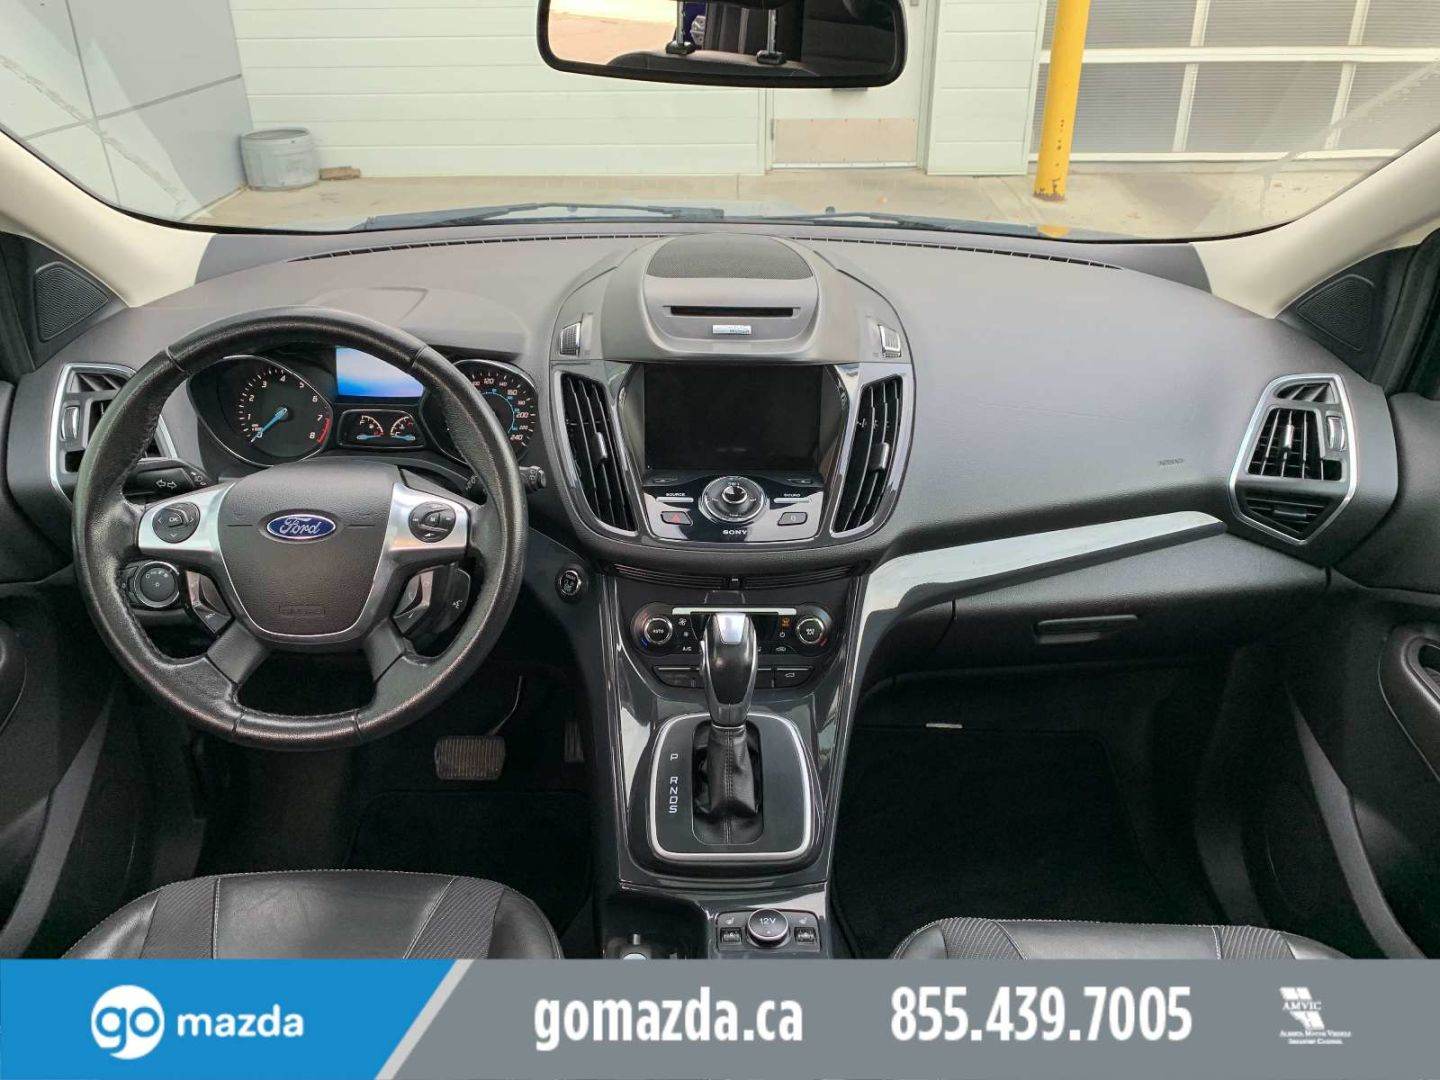 2013 Ford Escape Titanium for sale in Edmonton, Alberta